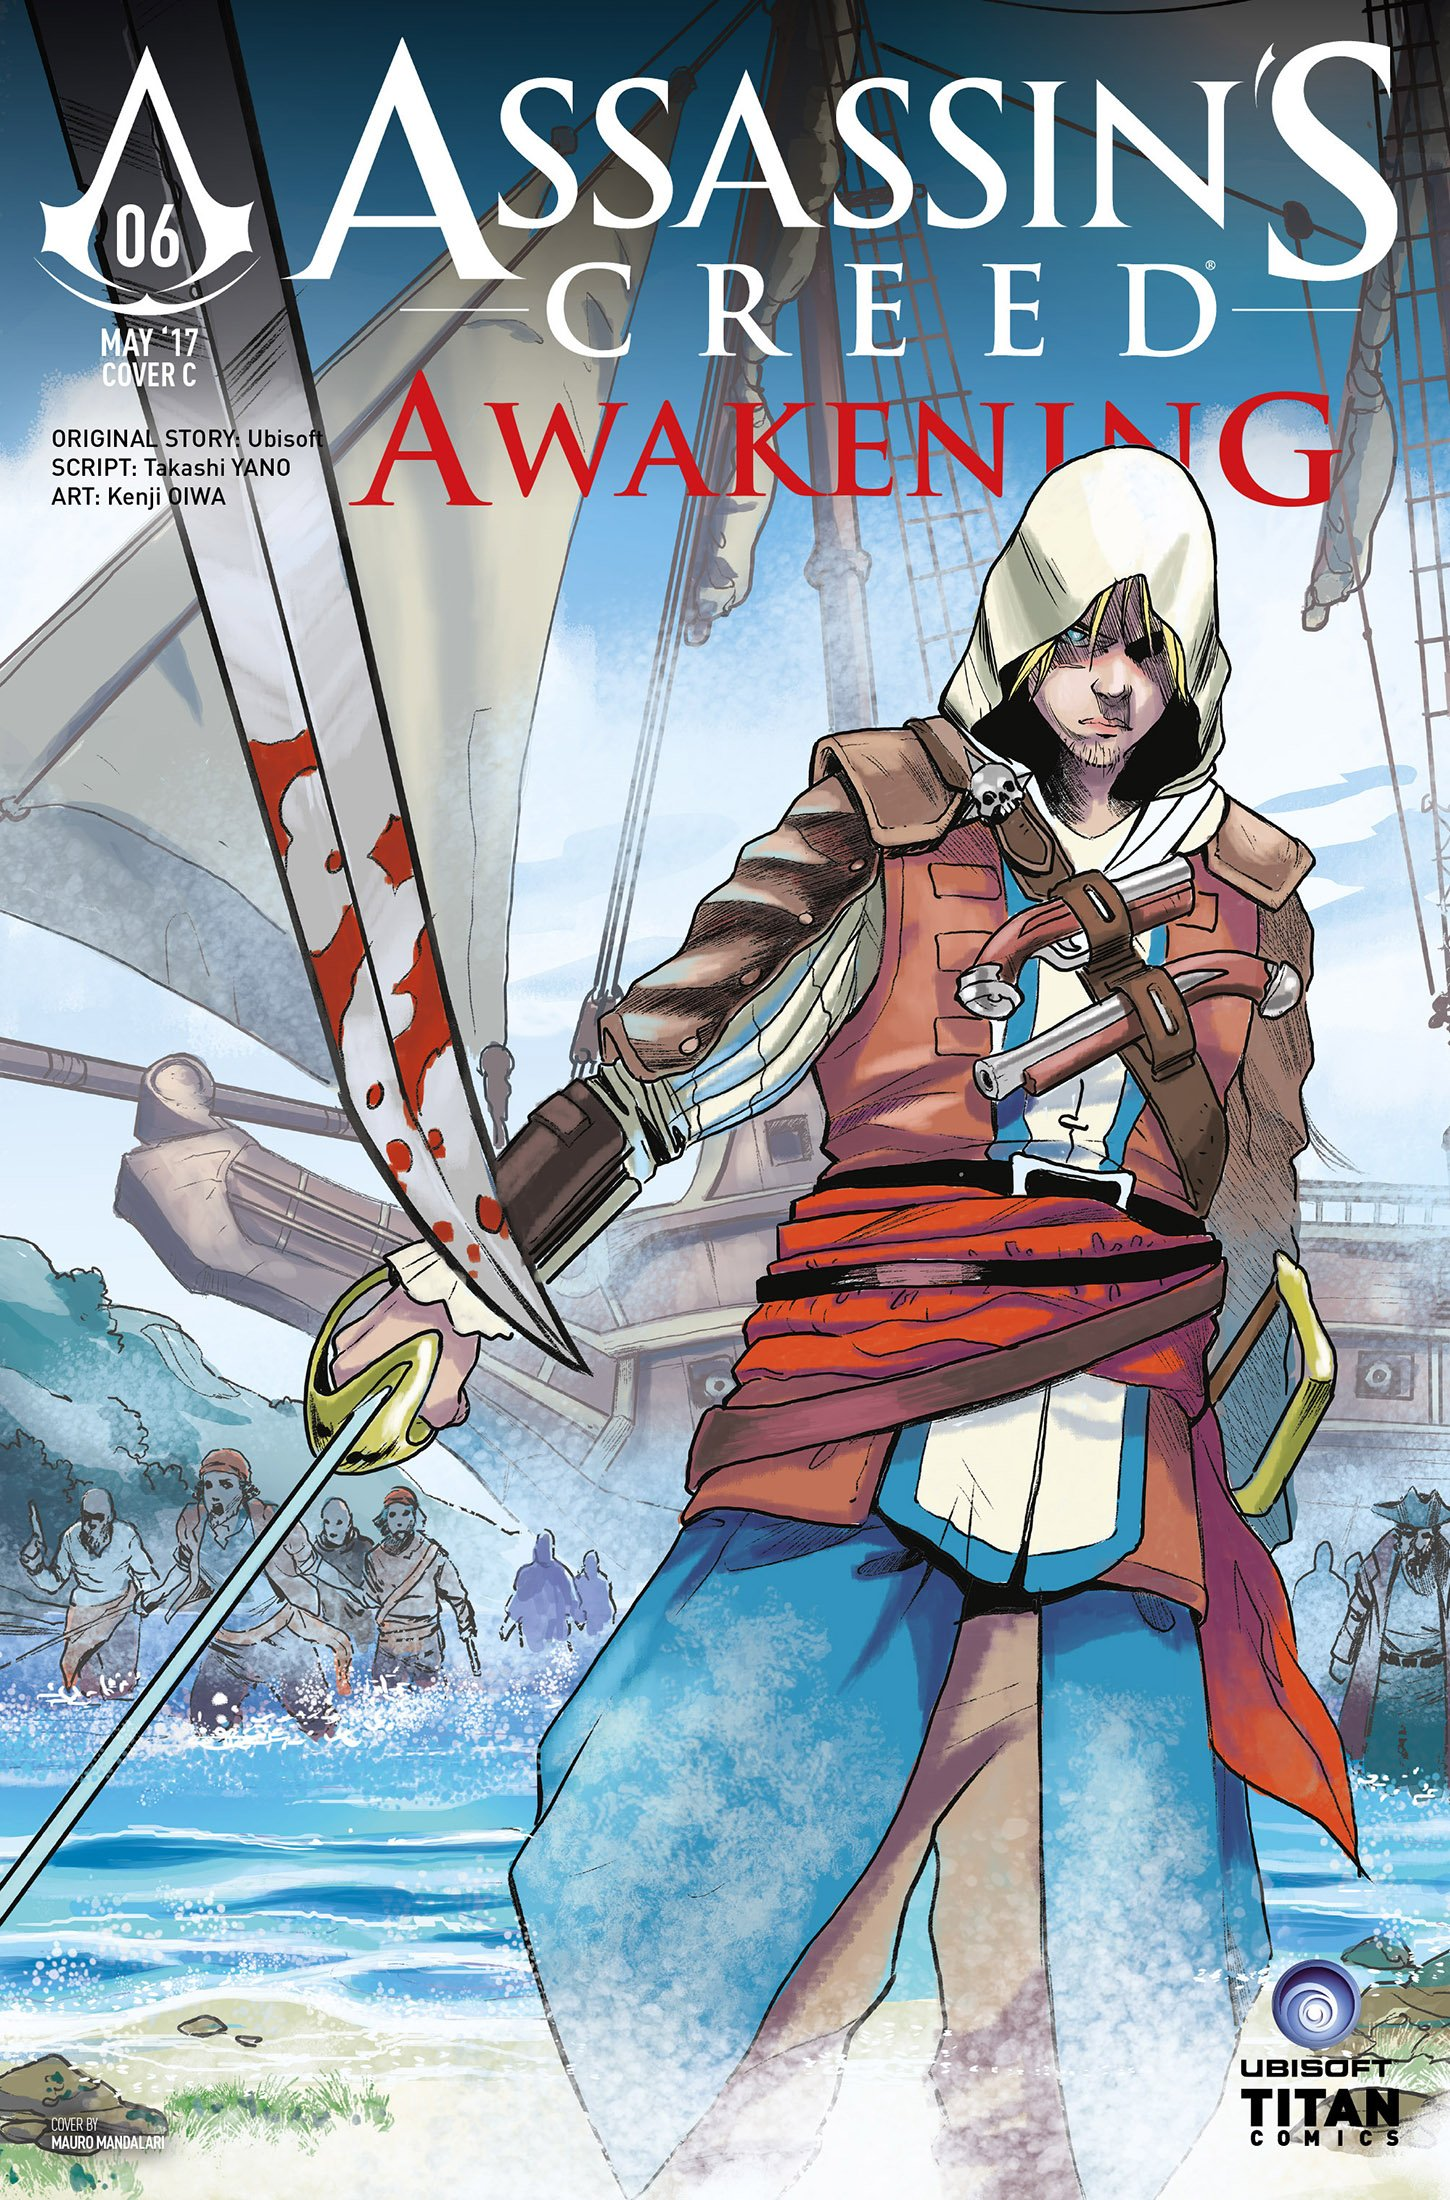 Assassin's Creed - Awakening 06 (May 2017) (cover c)